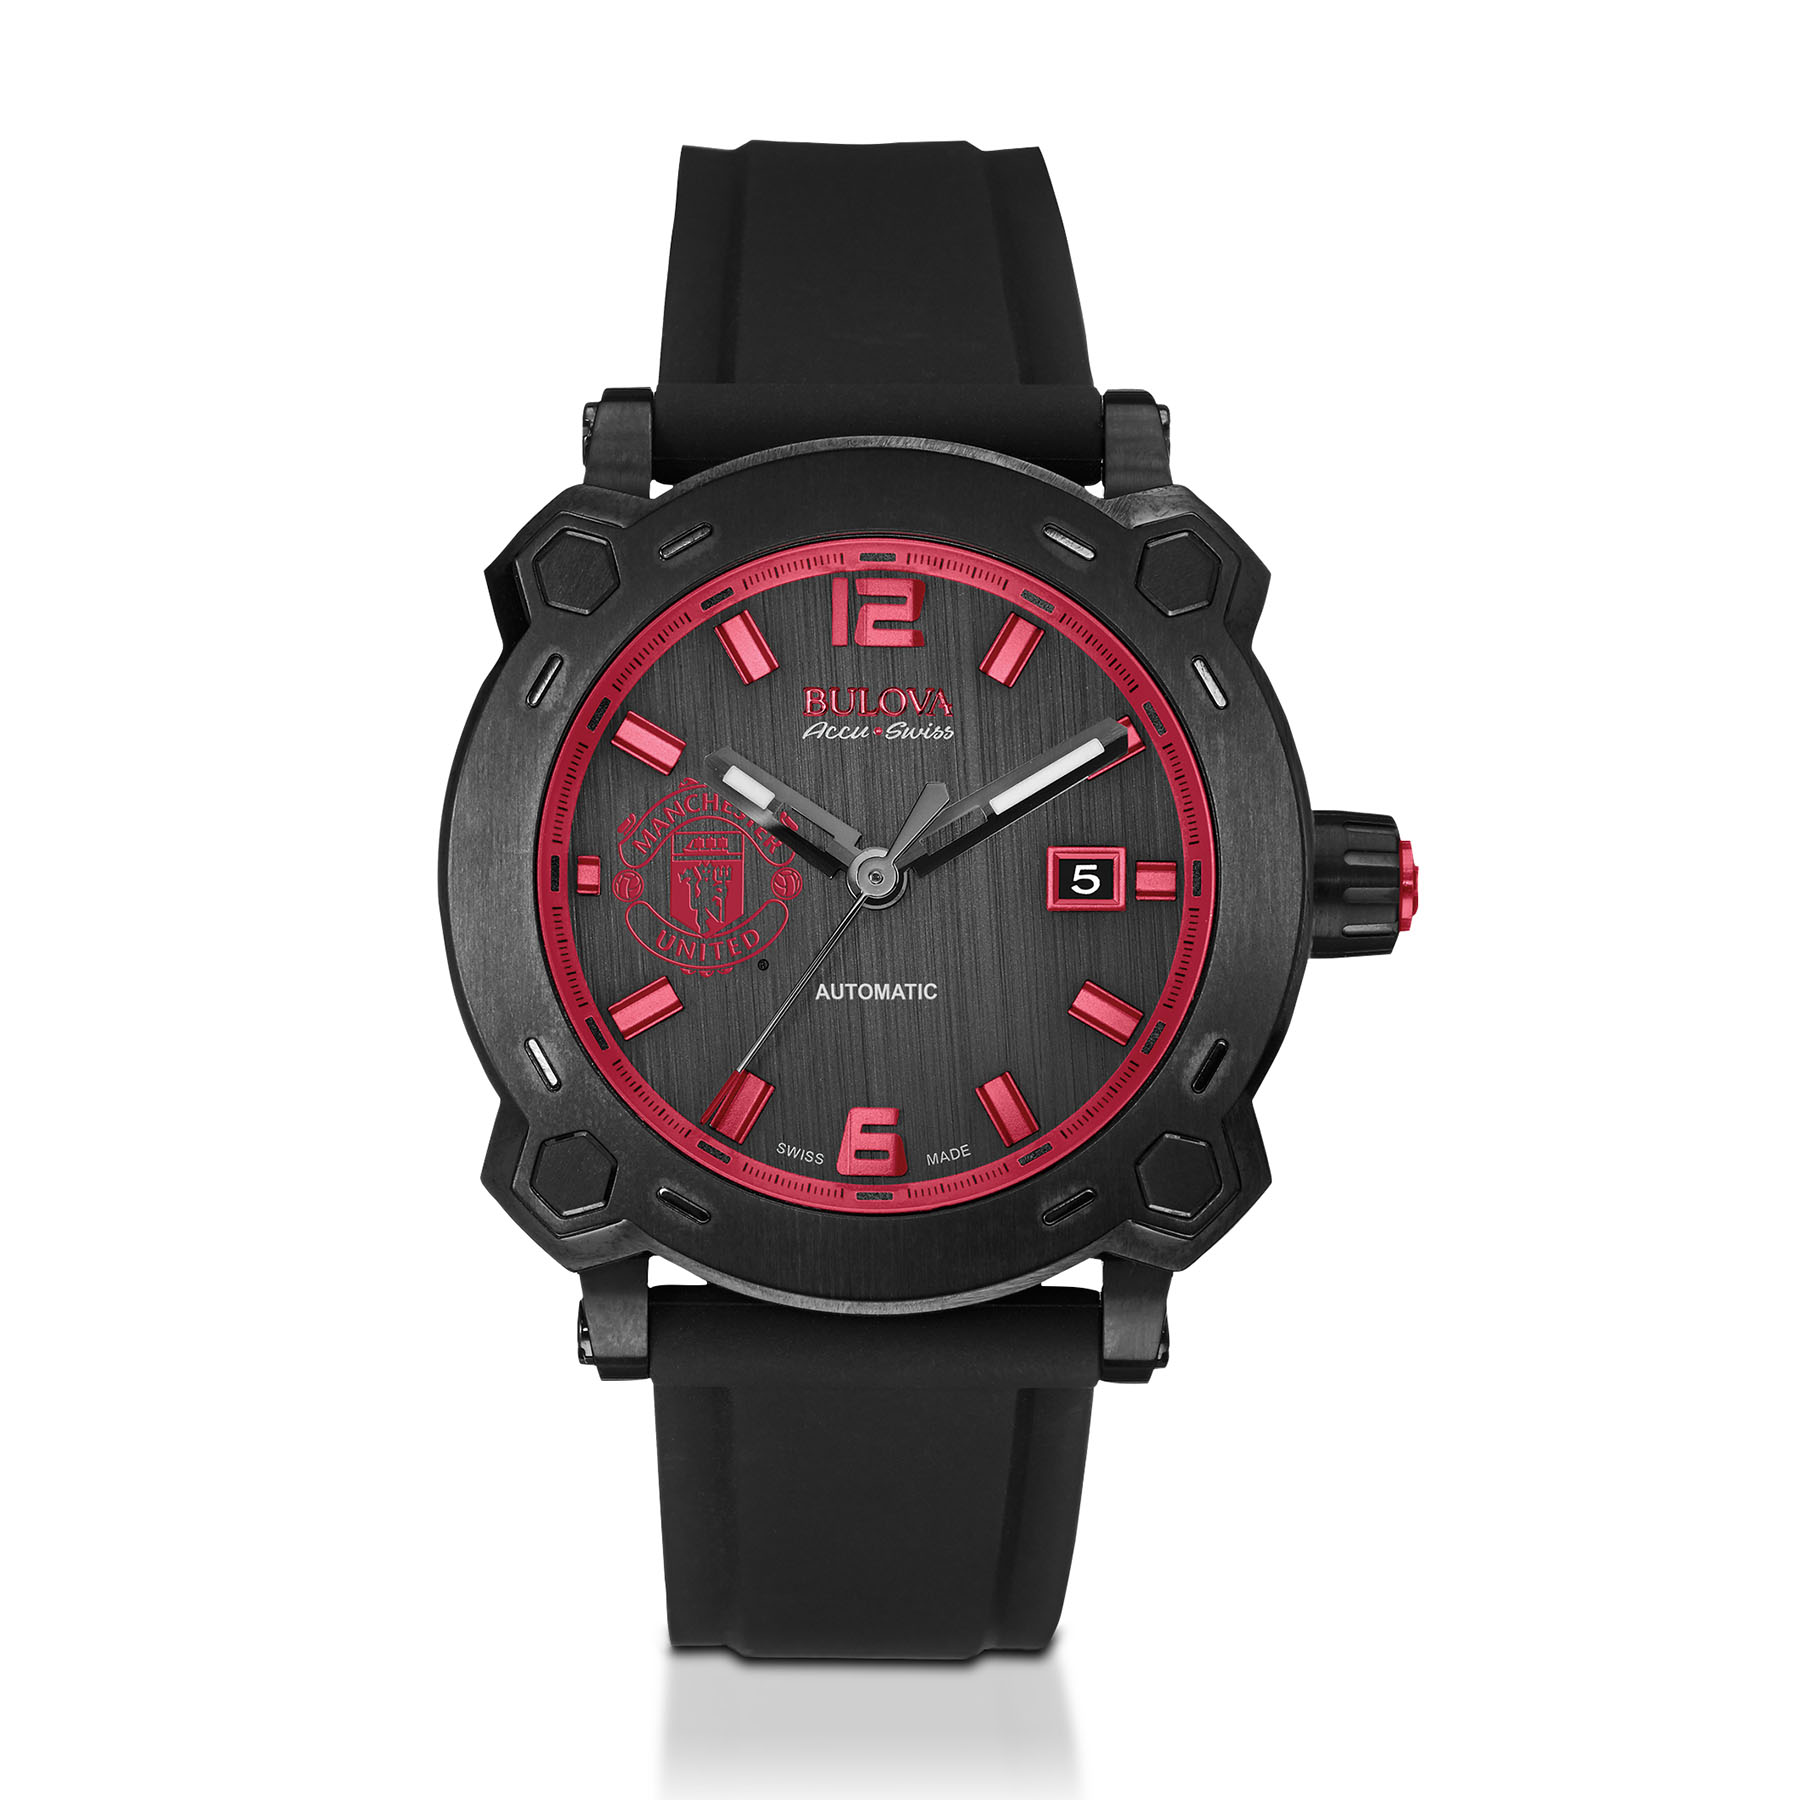 Manchester United Bulova Accu.Swiss Titanium Watch - Black Dial with Red Crest